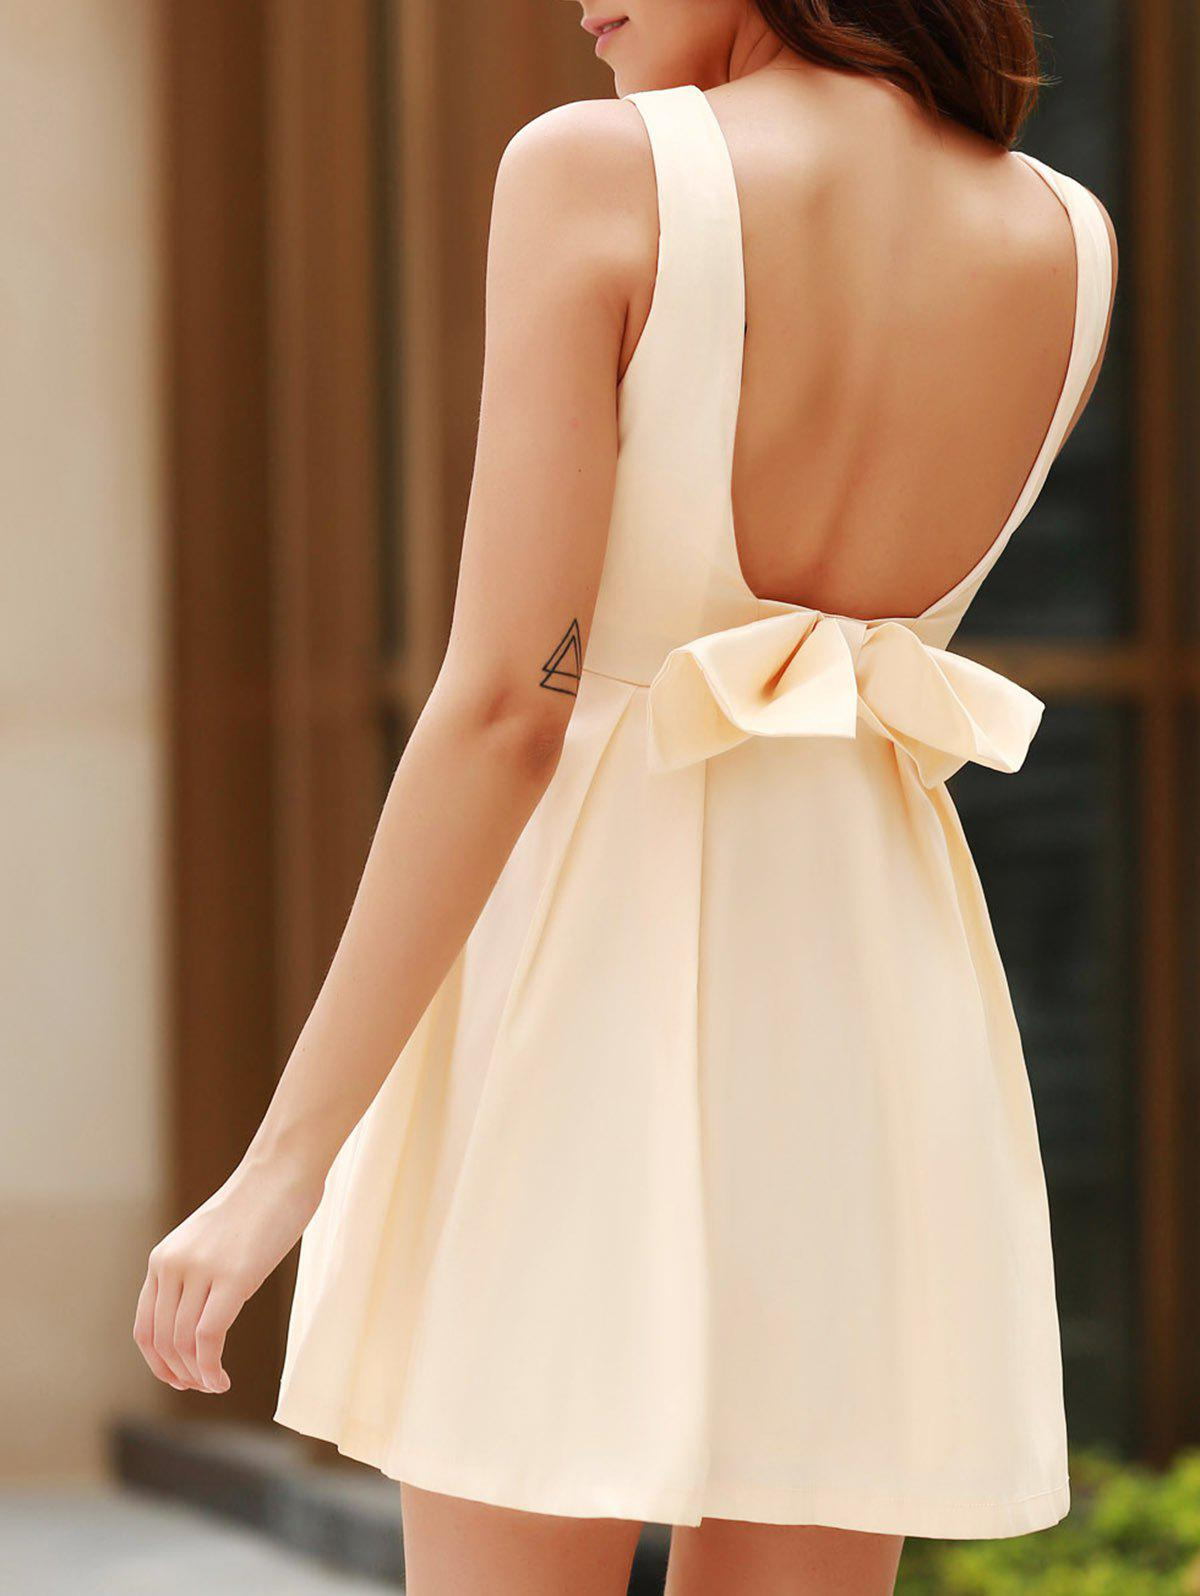 Sexy Round Neck Sleeveless Backless Bowknot Design Women's Dress sexy round neck sleeveless backless bowknot design women s dress